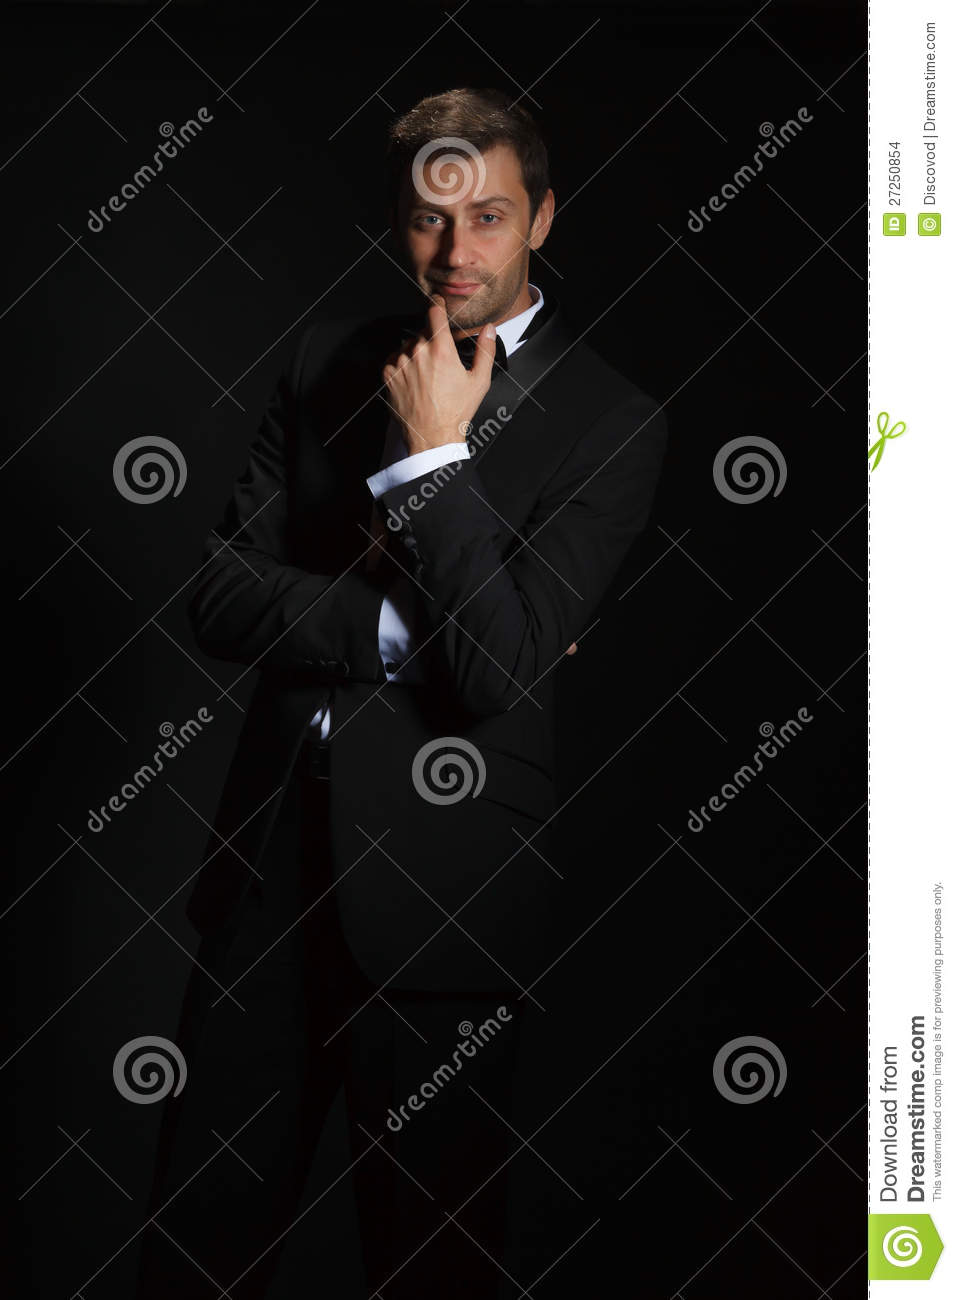 Handsome Man In A Tuxedo Stock Images - Image: 27250854